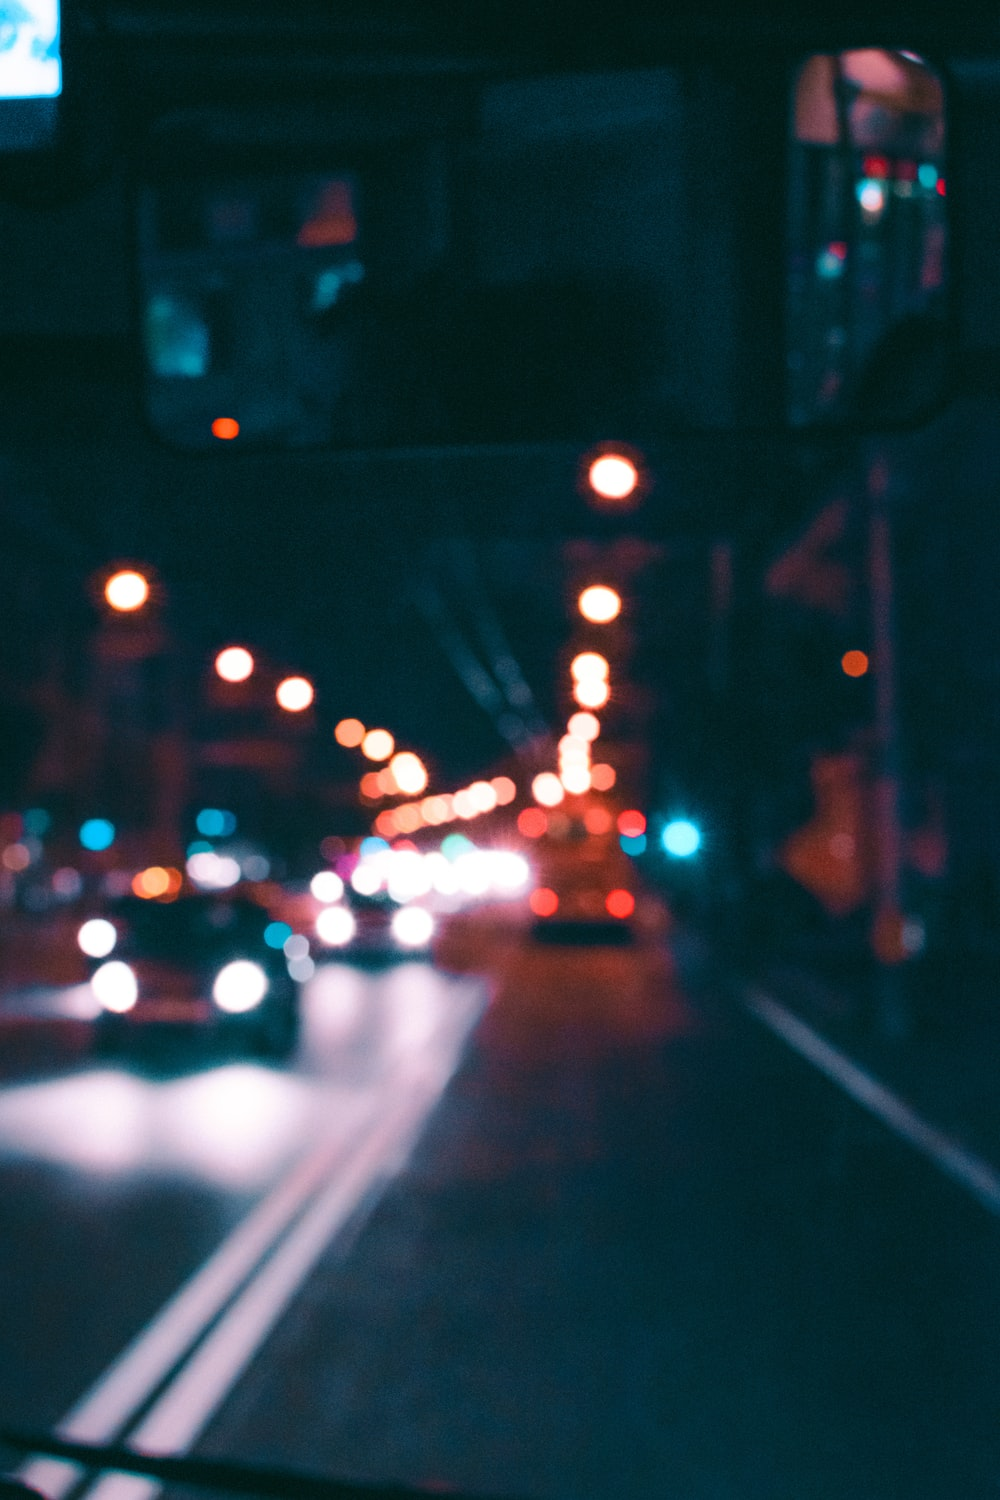 bokeh photography of vehicles on street at night